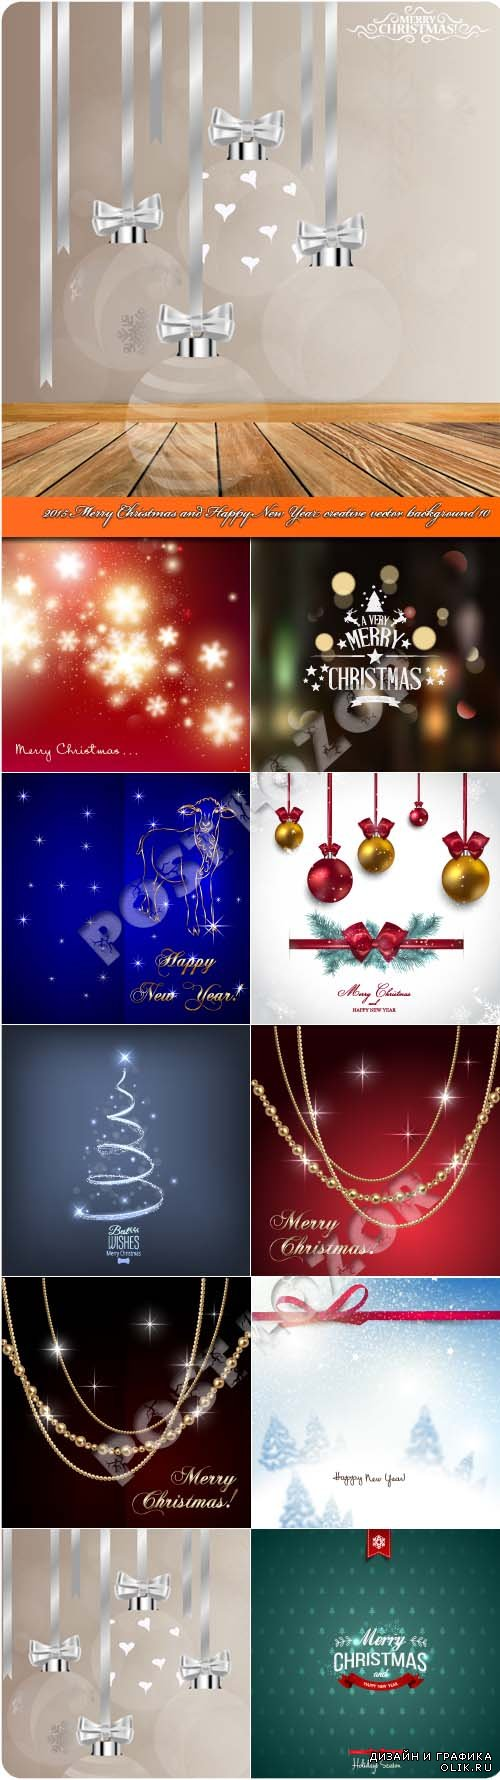 2015 Merry Christmas and Happy New Year creative vector background 10